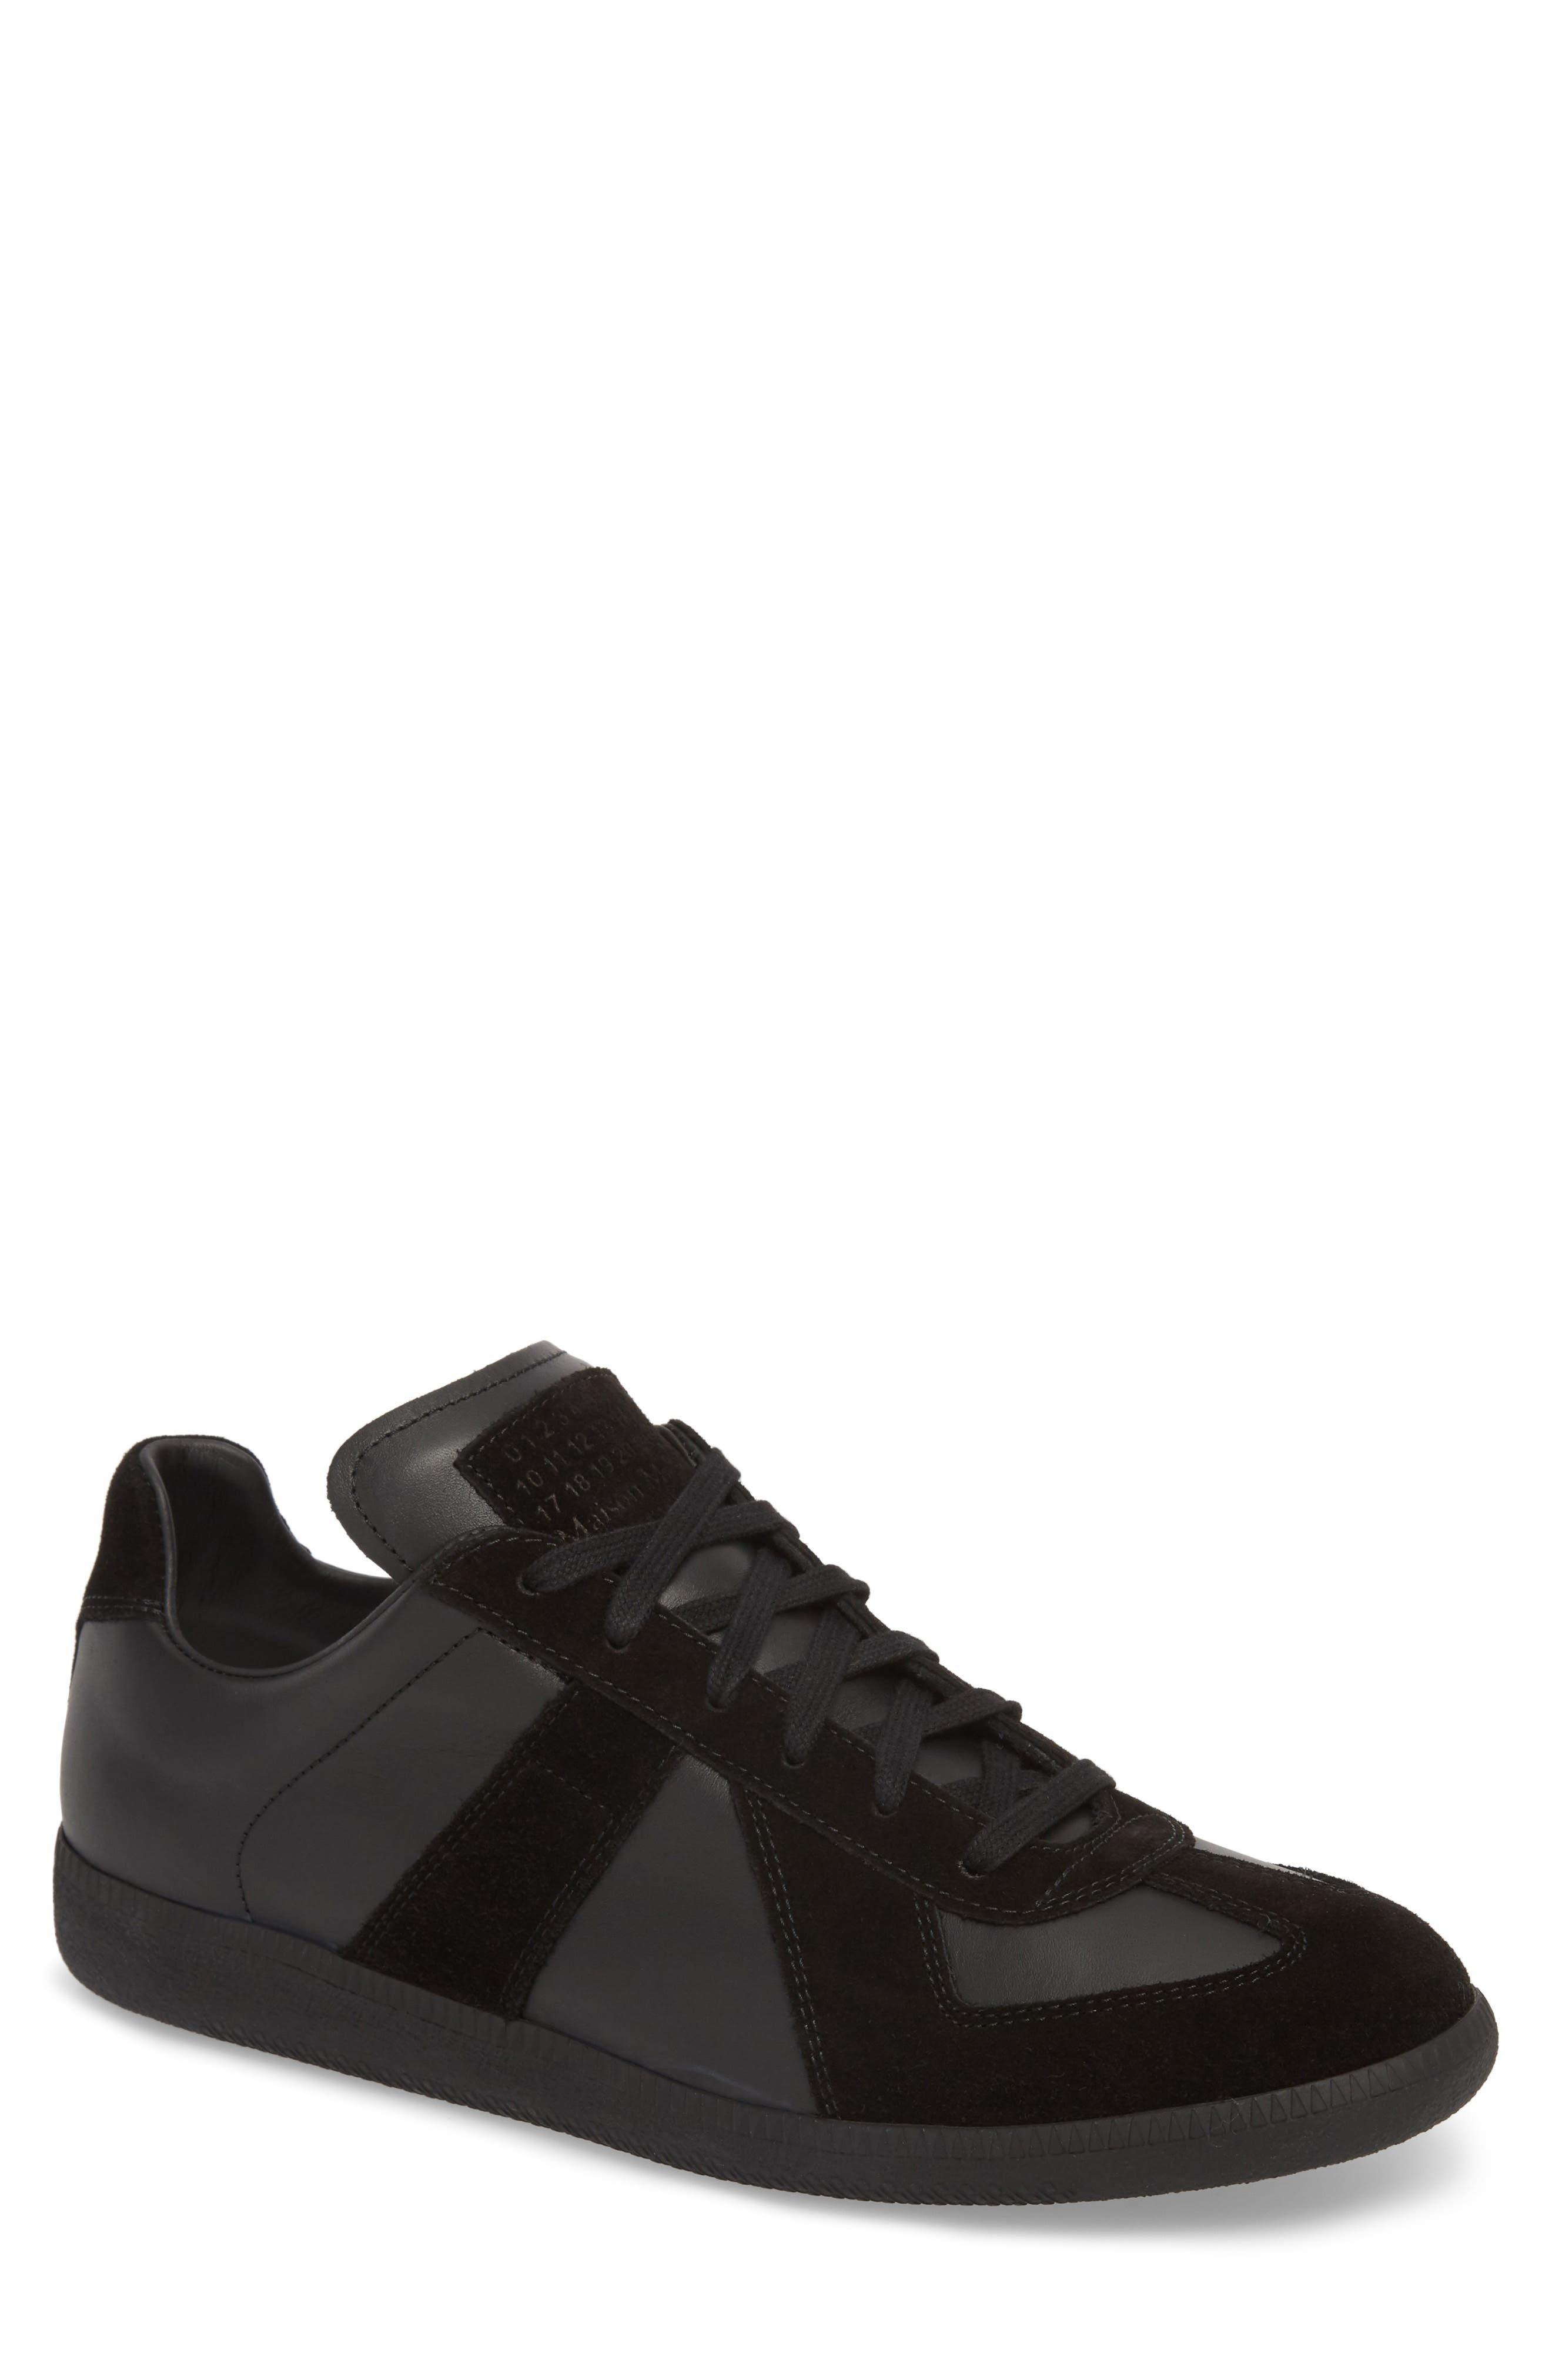 Maison Margiela Replica Low Top Sneaker,                         Main,                         color, BLACK